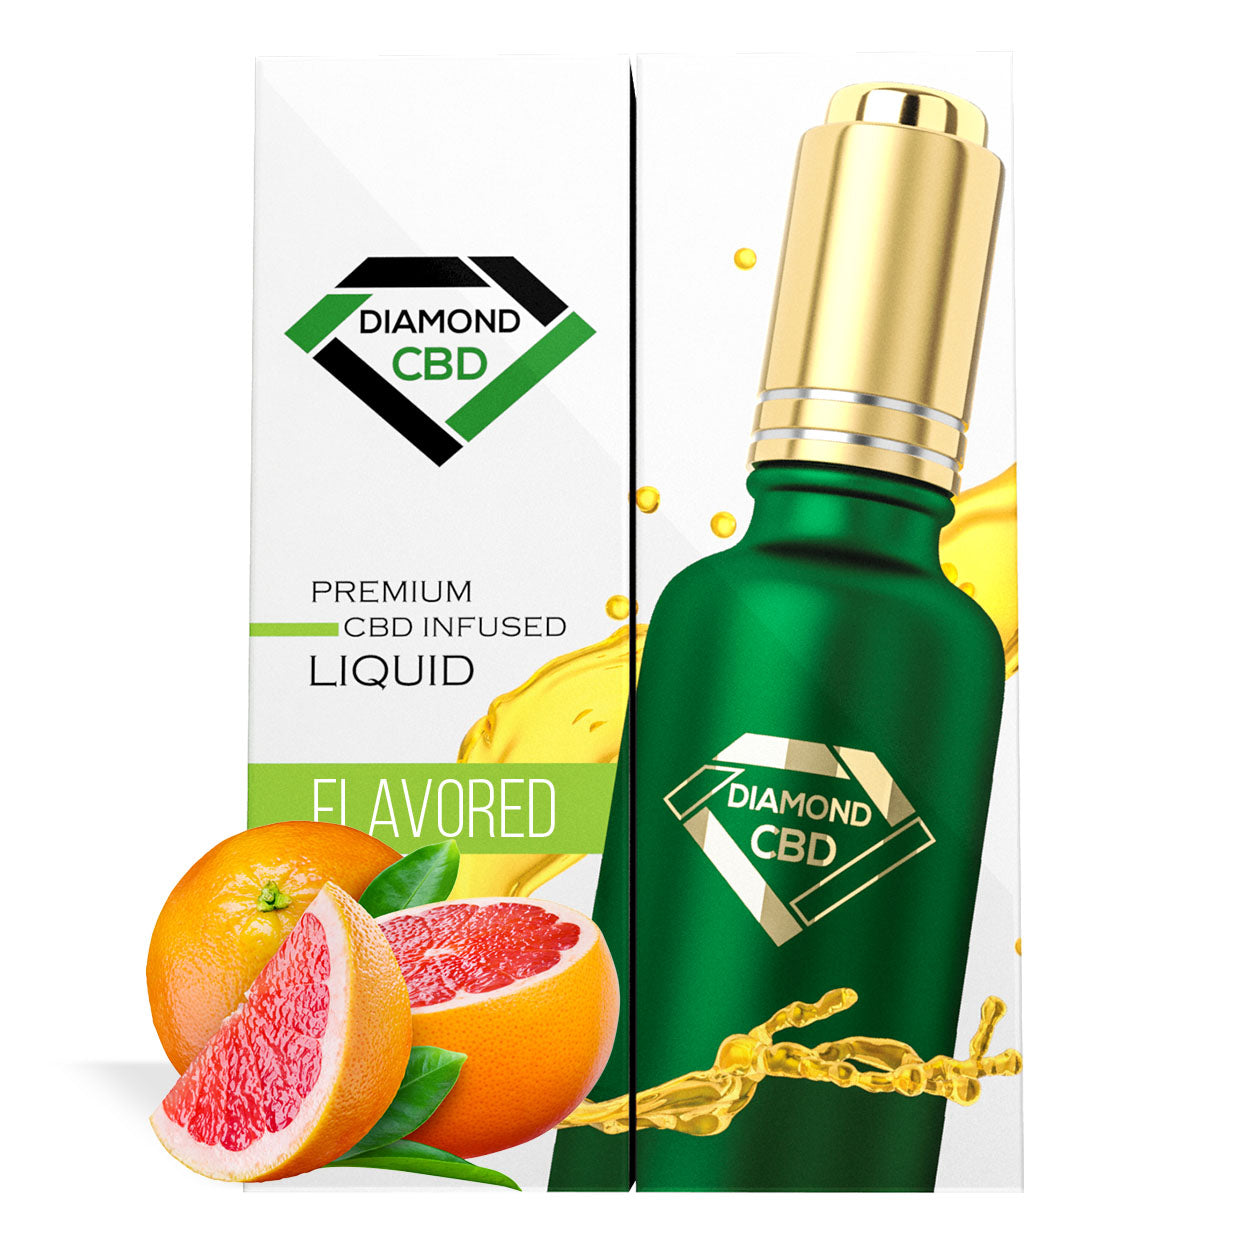 Grapefruit Flavor Diamond CBD Oil - My CBD Mall